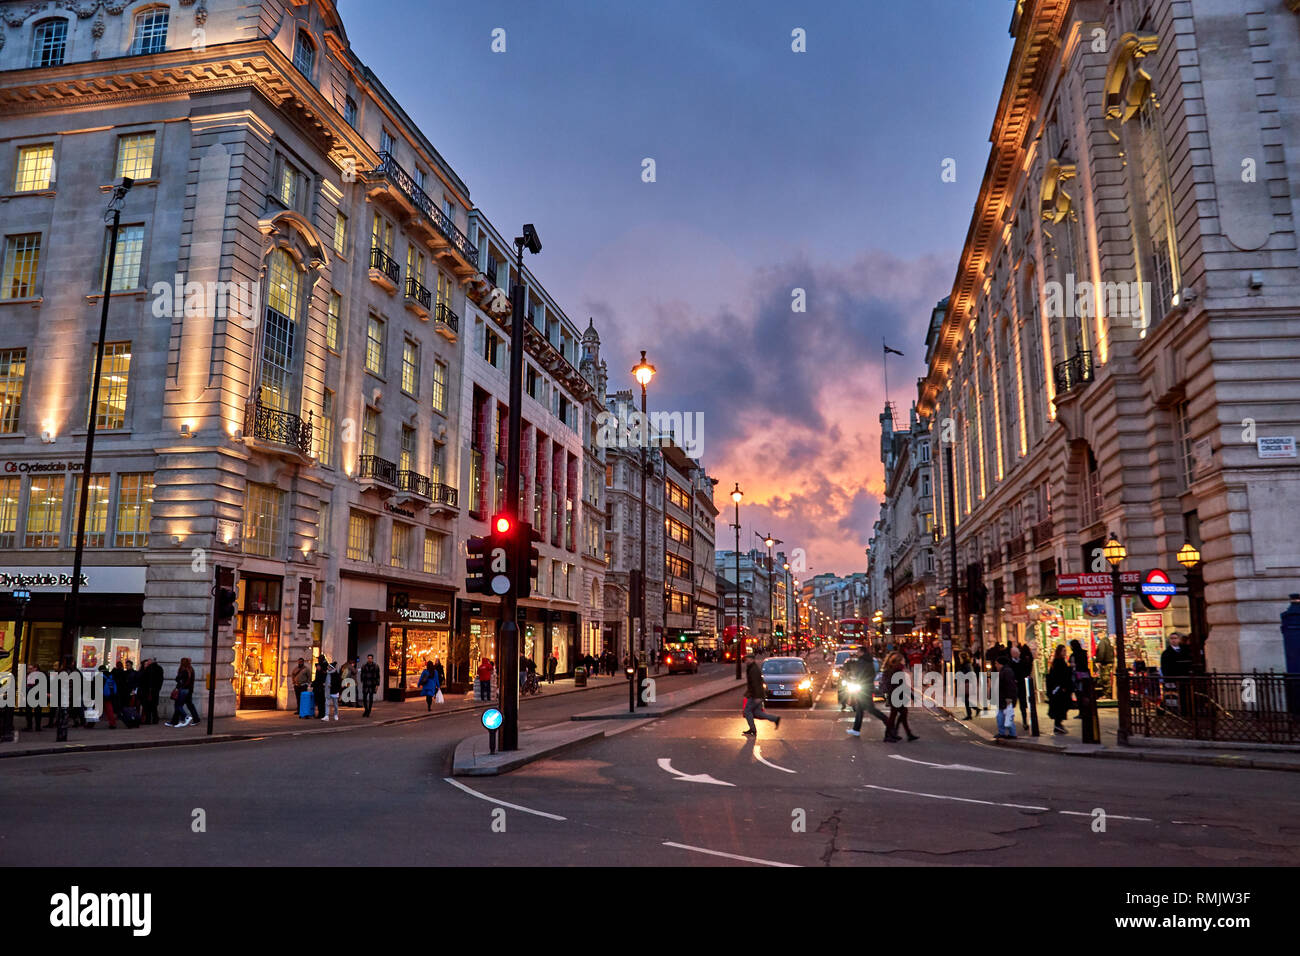 Rush hour and traffic near Piccadilly Circus with pedestrians walking in London's West End. Typical urban scenery in the center of London city. - Stock Image